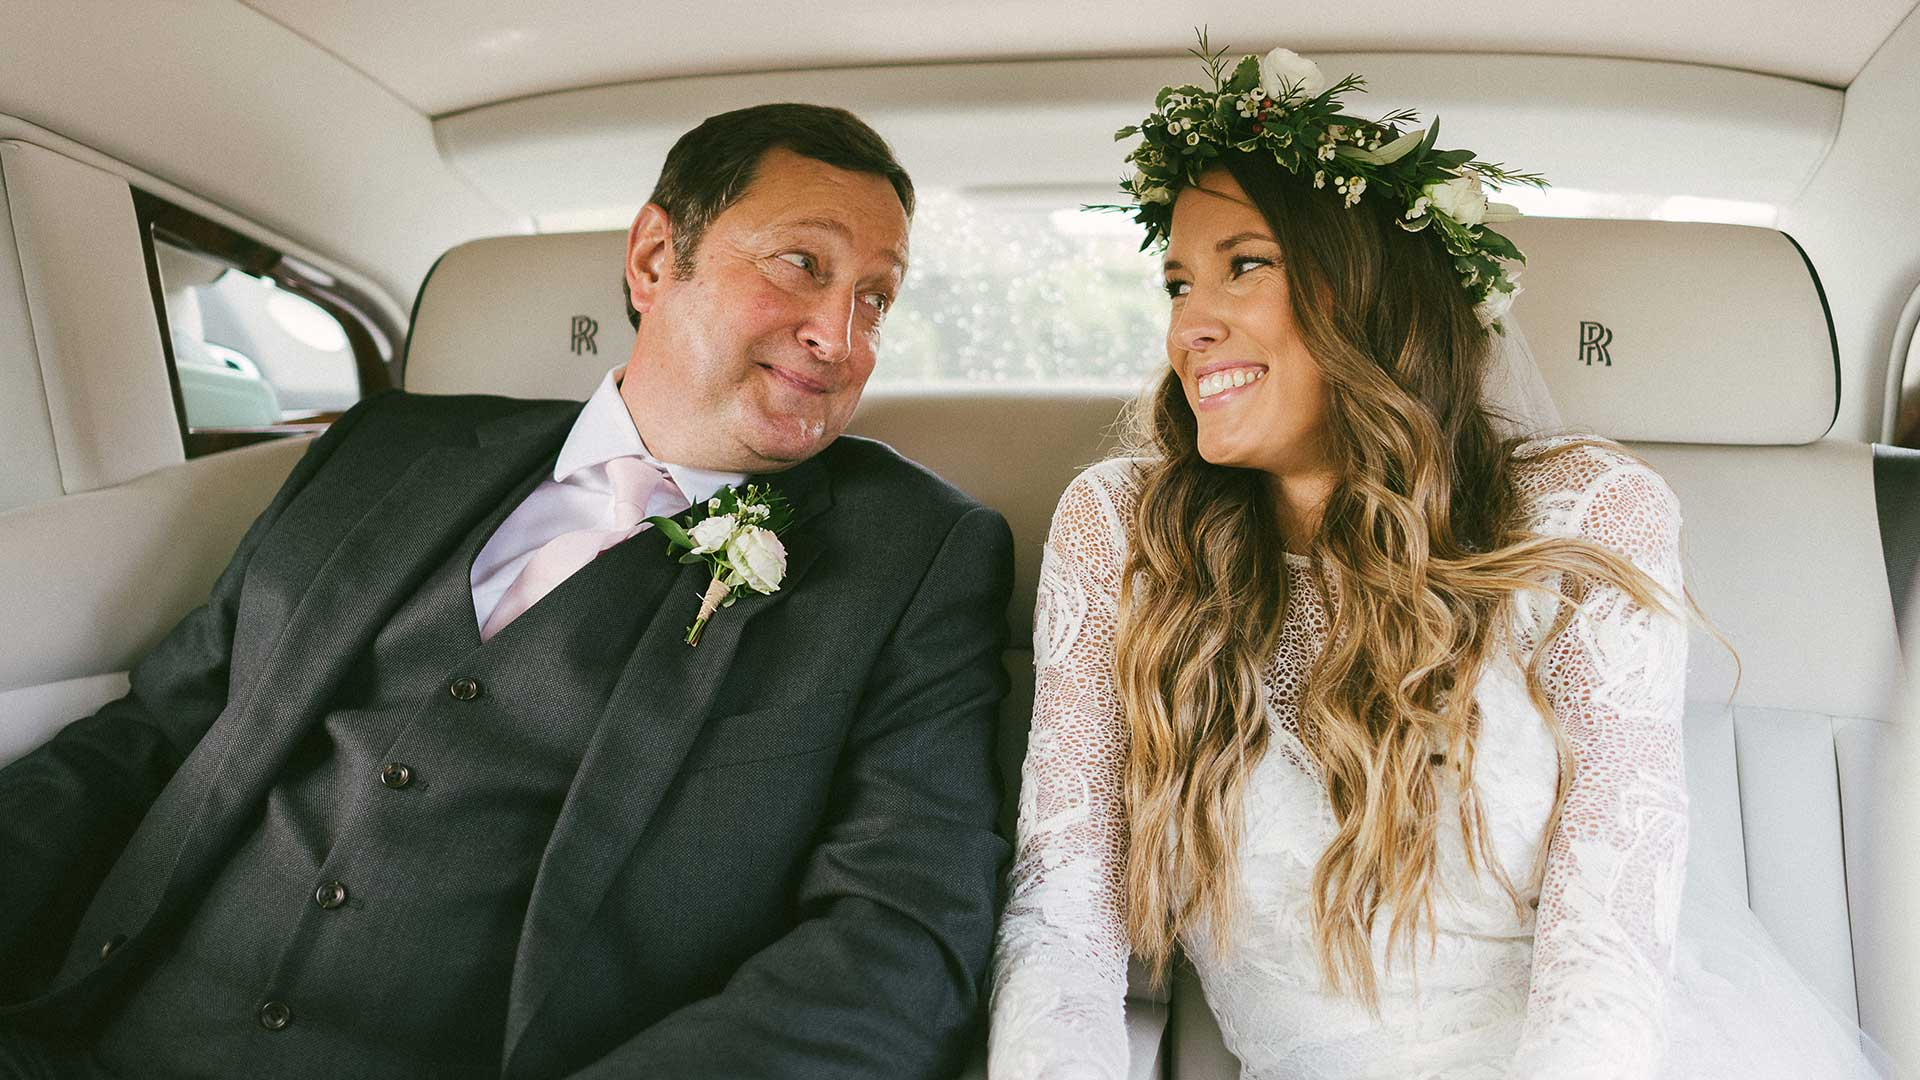 Becky and her father in the Rolls-Royce wedding car